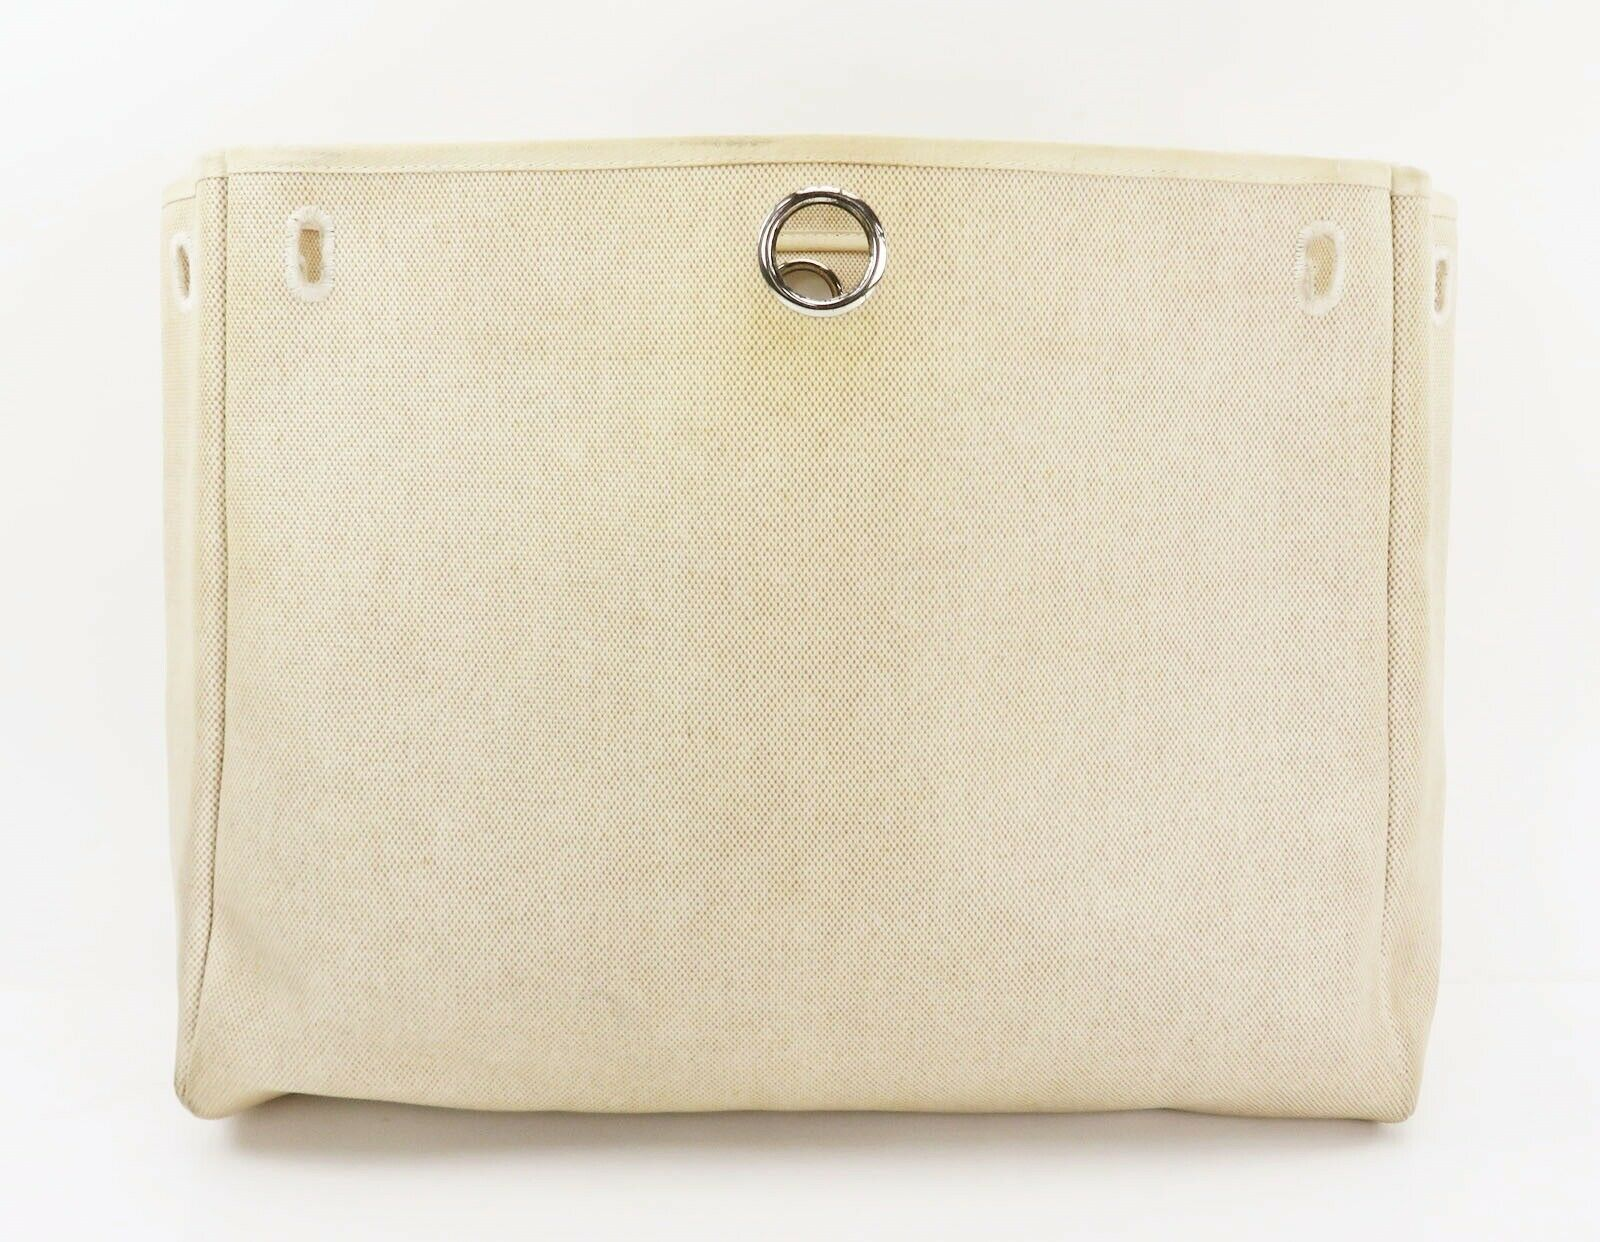 Auth HERMES Her Bag 2 in 1 Beige Canvas and Leather Hand Shoulder Bag #26110 image 11